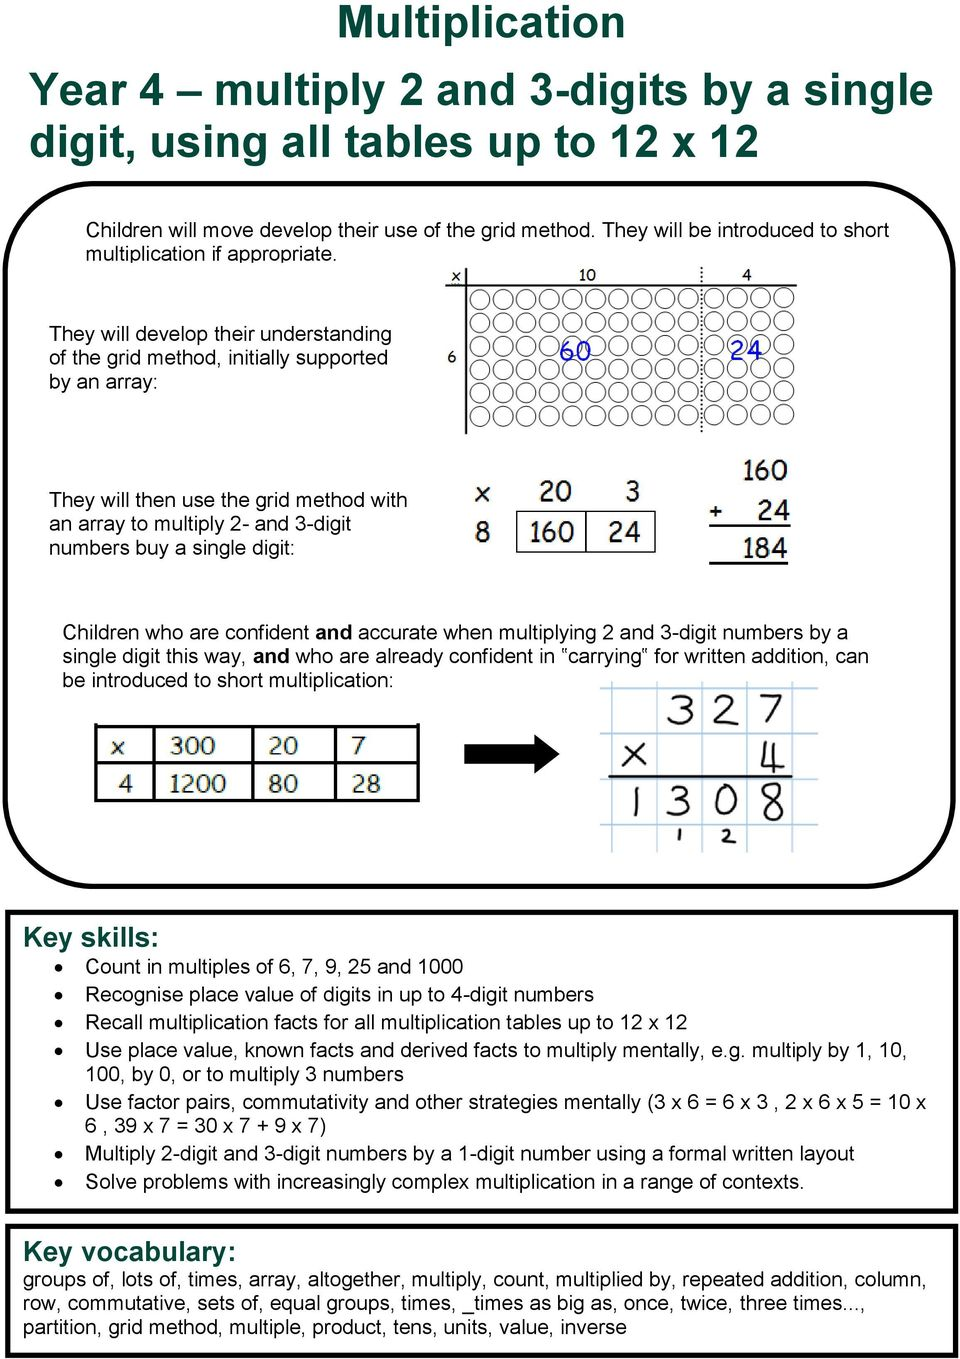 They will develop their understanding of the grid method, initially supported by an array: They will then use the grid method with an array to multiply 2- and 3-digit numbers buy a single digit: